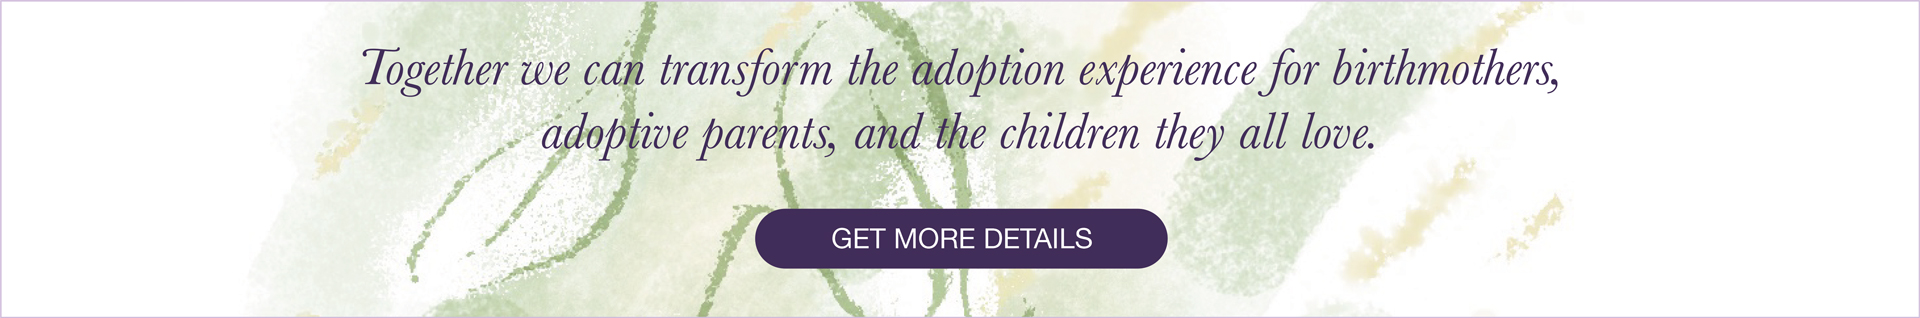 Photo to show how we can transform the adoption experience for birthmothers, adoptive parents, and the children involved.